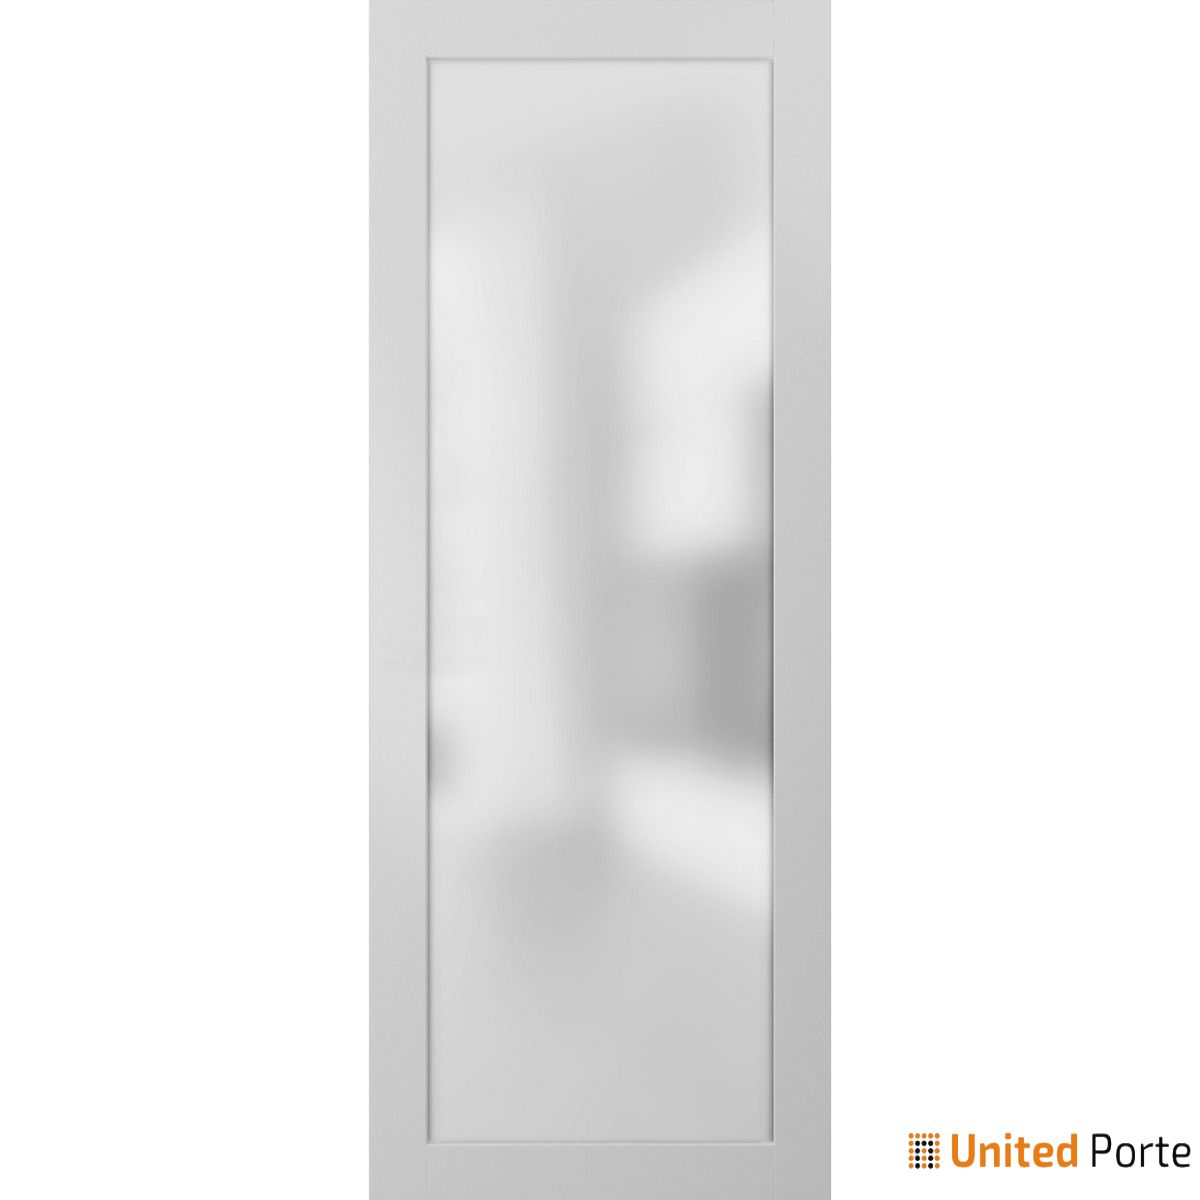 Planum 2102 White Sturdy Barn Door Frosted Tempered Glass Slab | Modern Solid Panel Interior Barn Doors